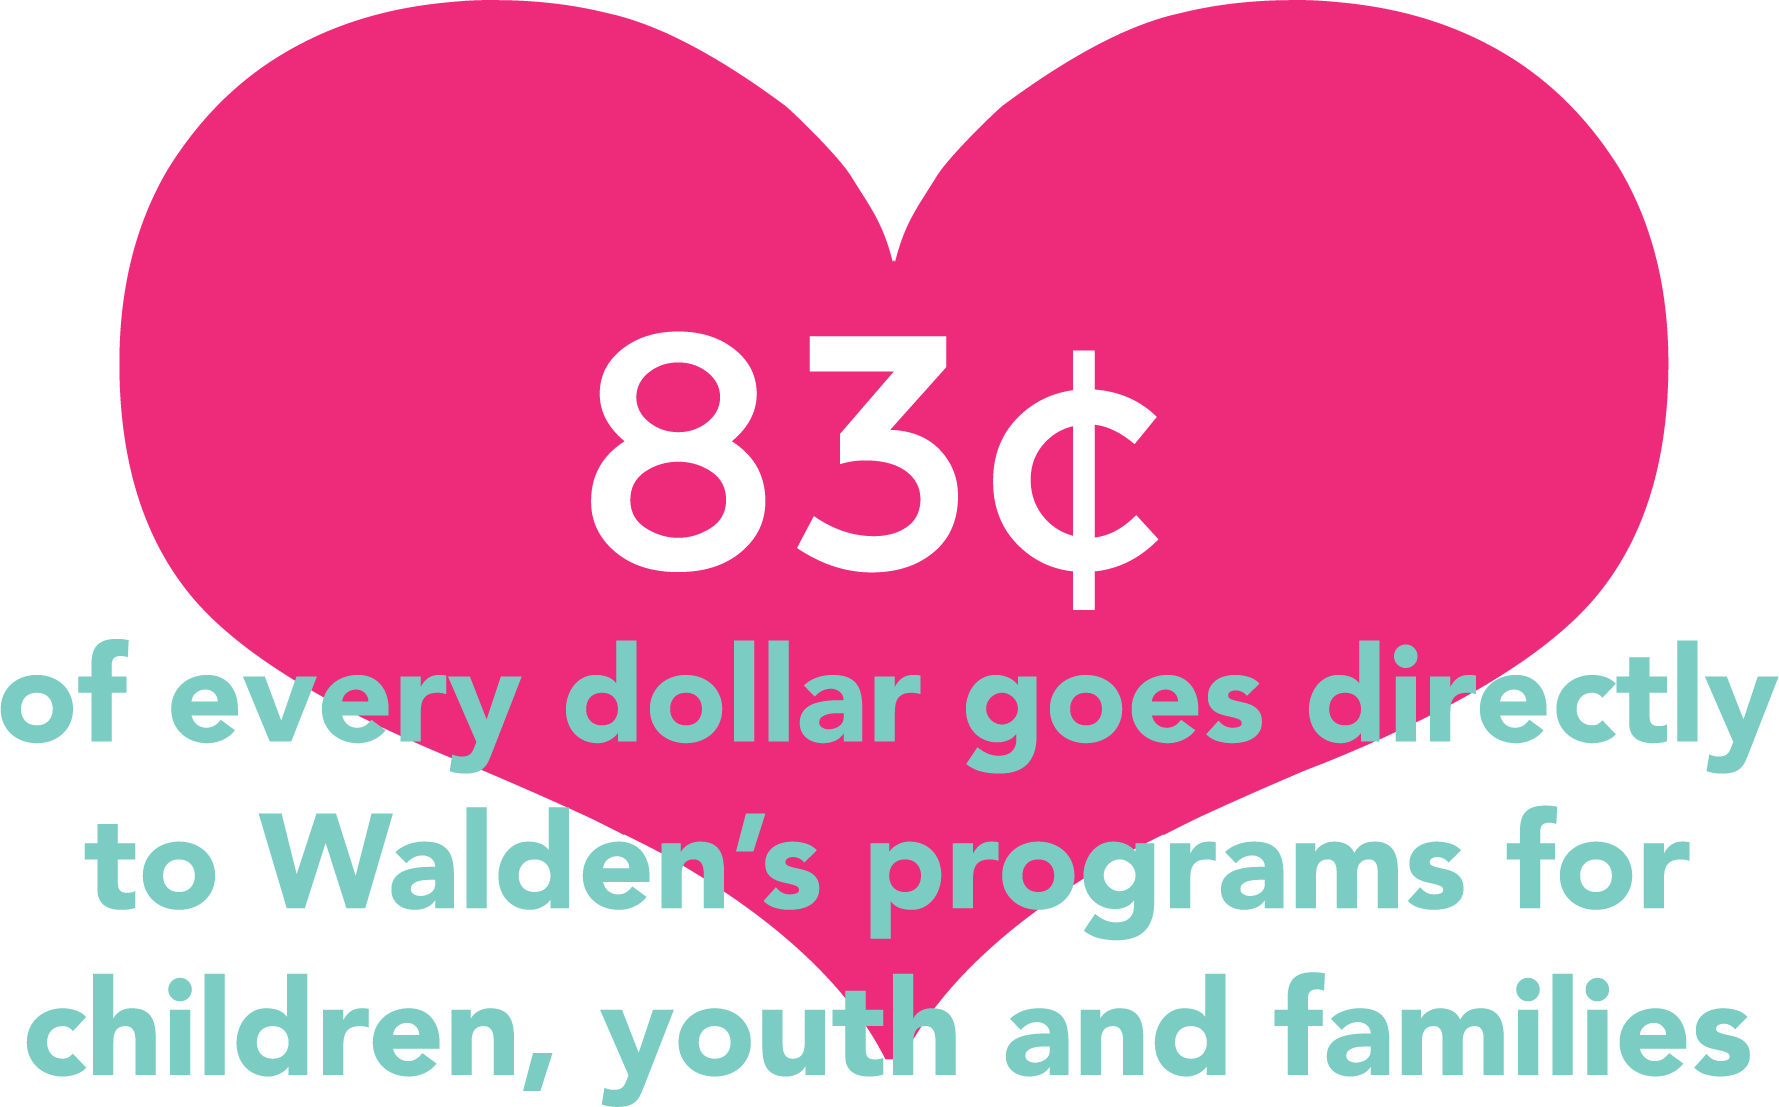 83 cents of every dollar goes to programs.